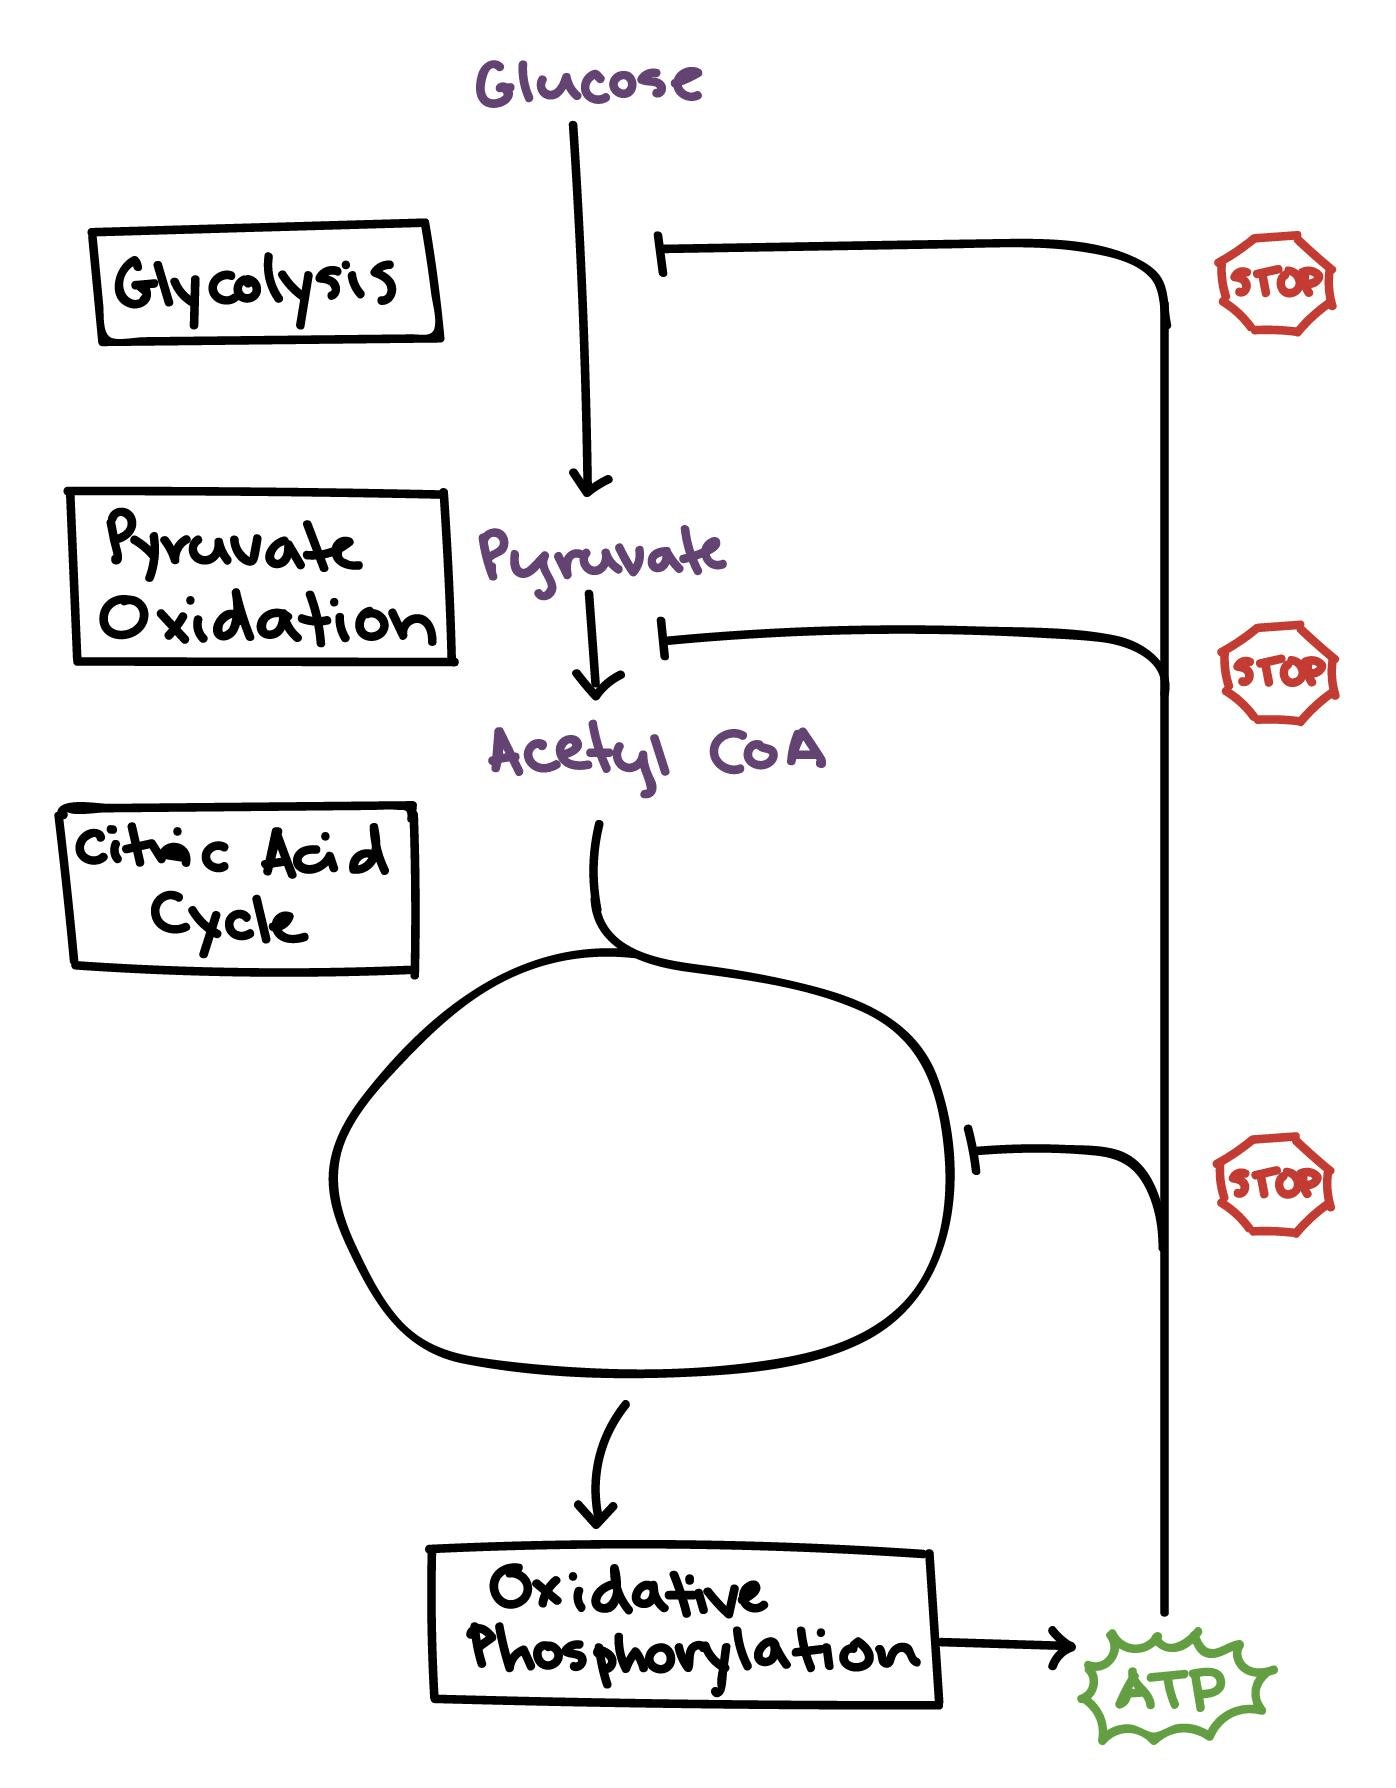 Is Glucose A Substrate Or Product In Cellular Respiration